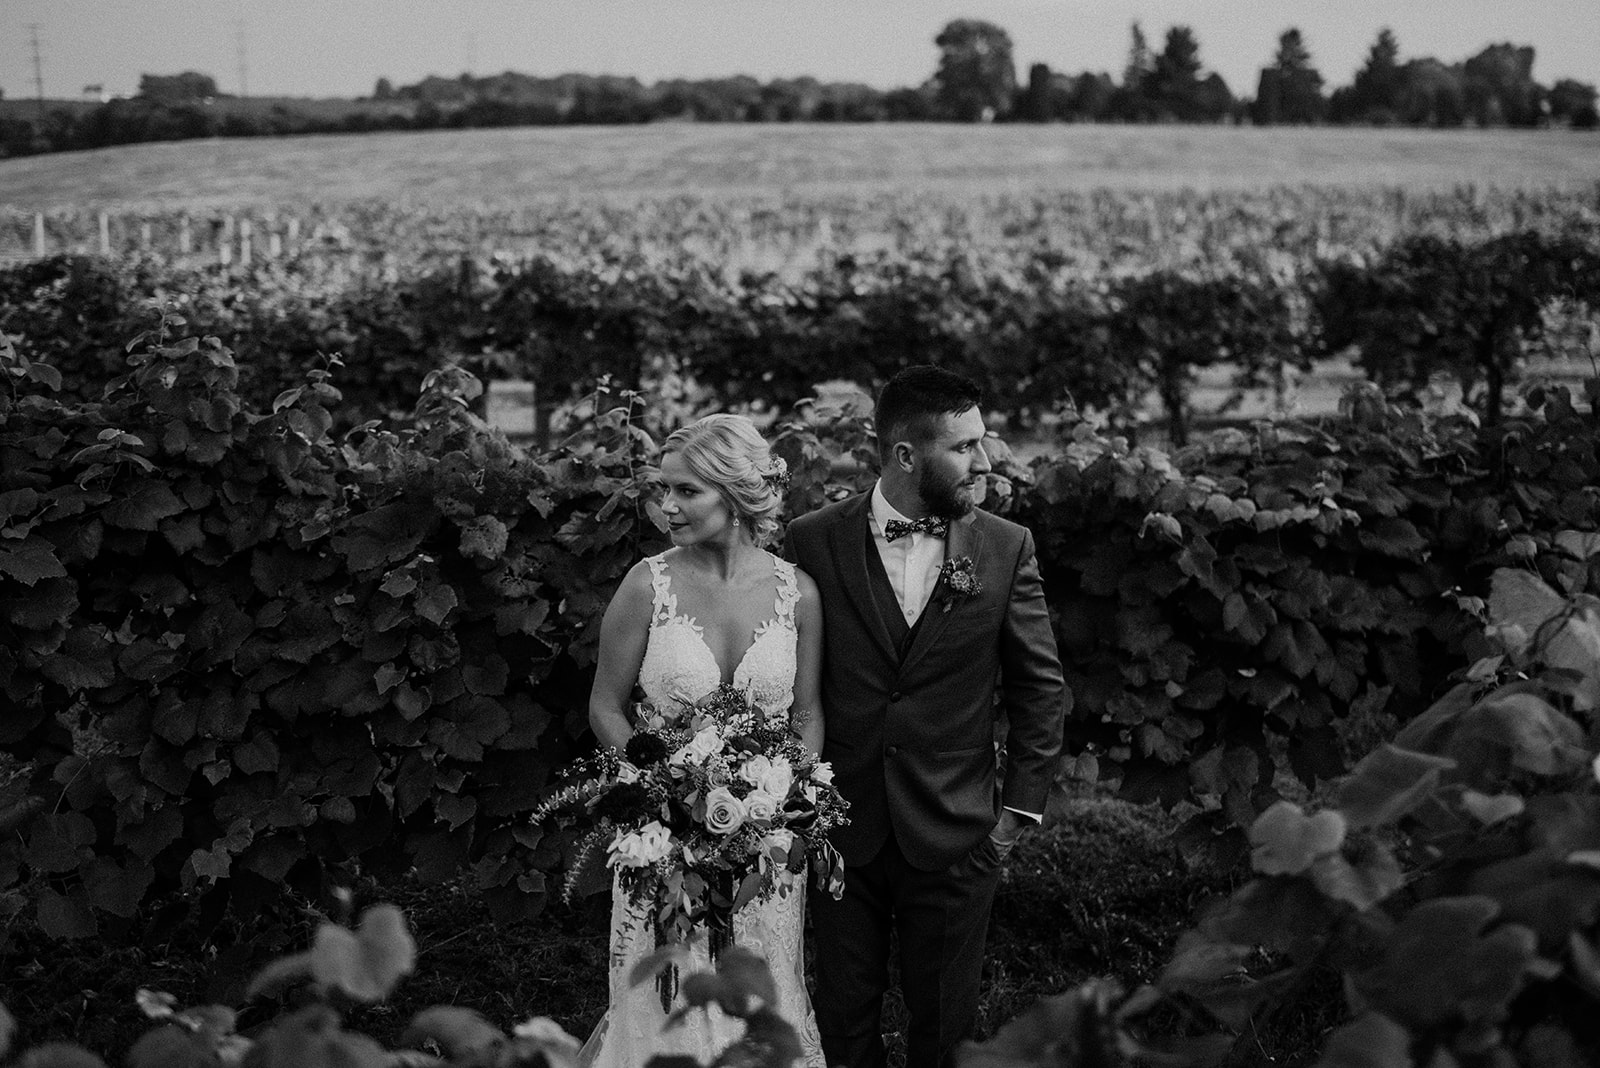 overthevineswisconsinwedding_0932.jpg